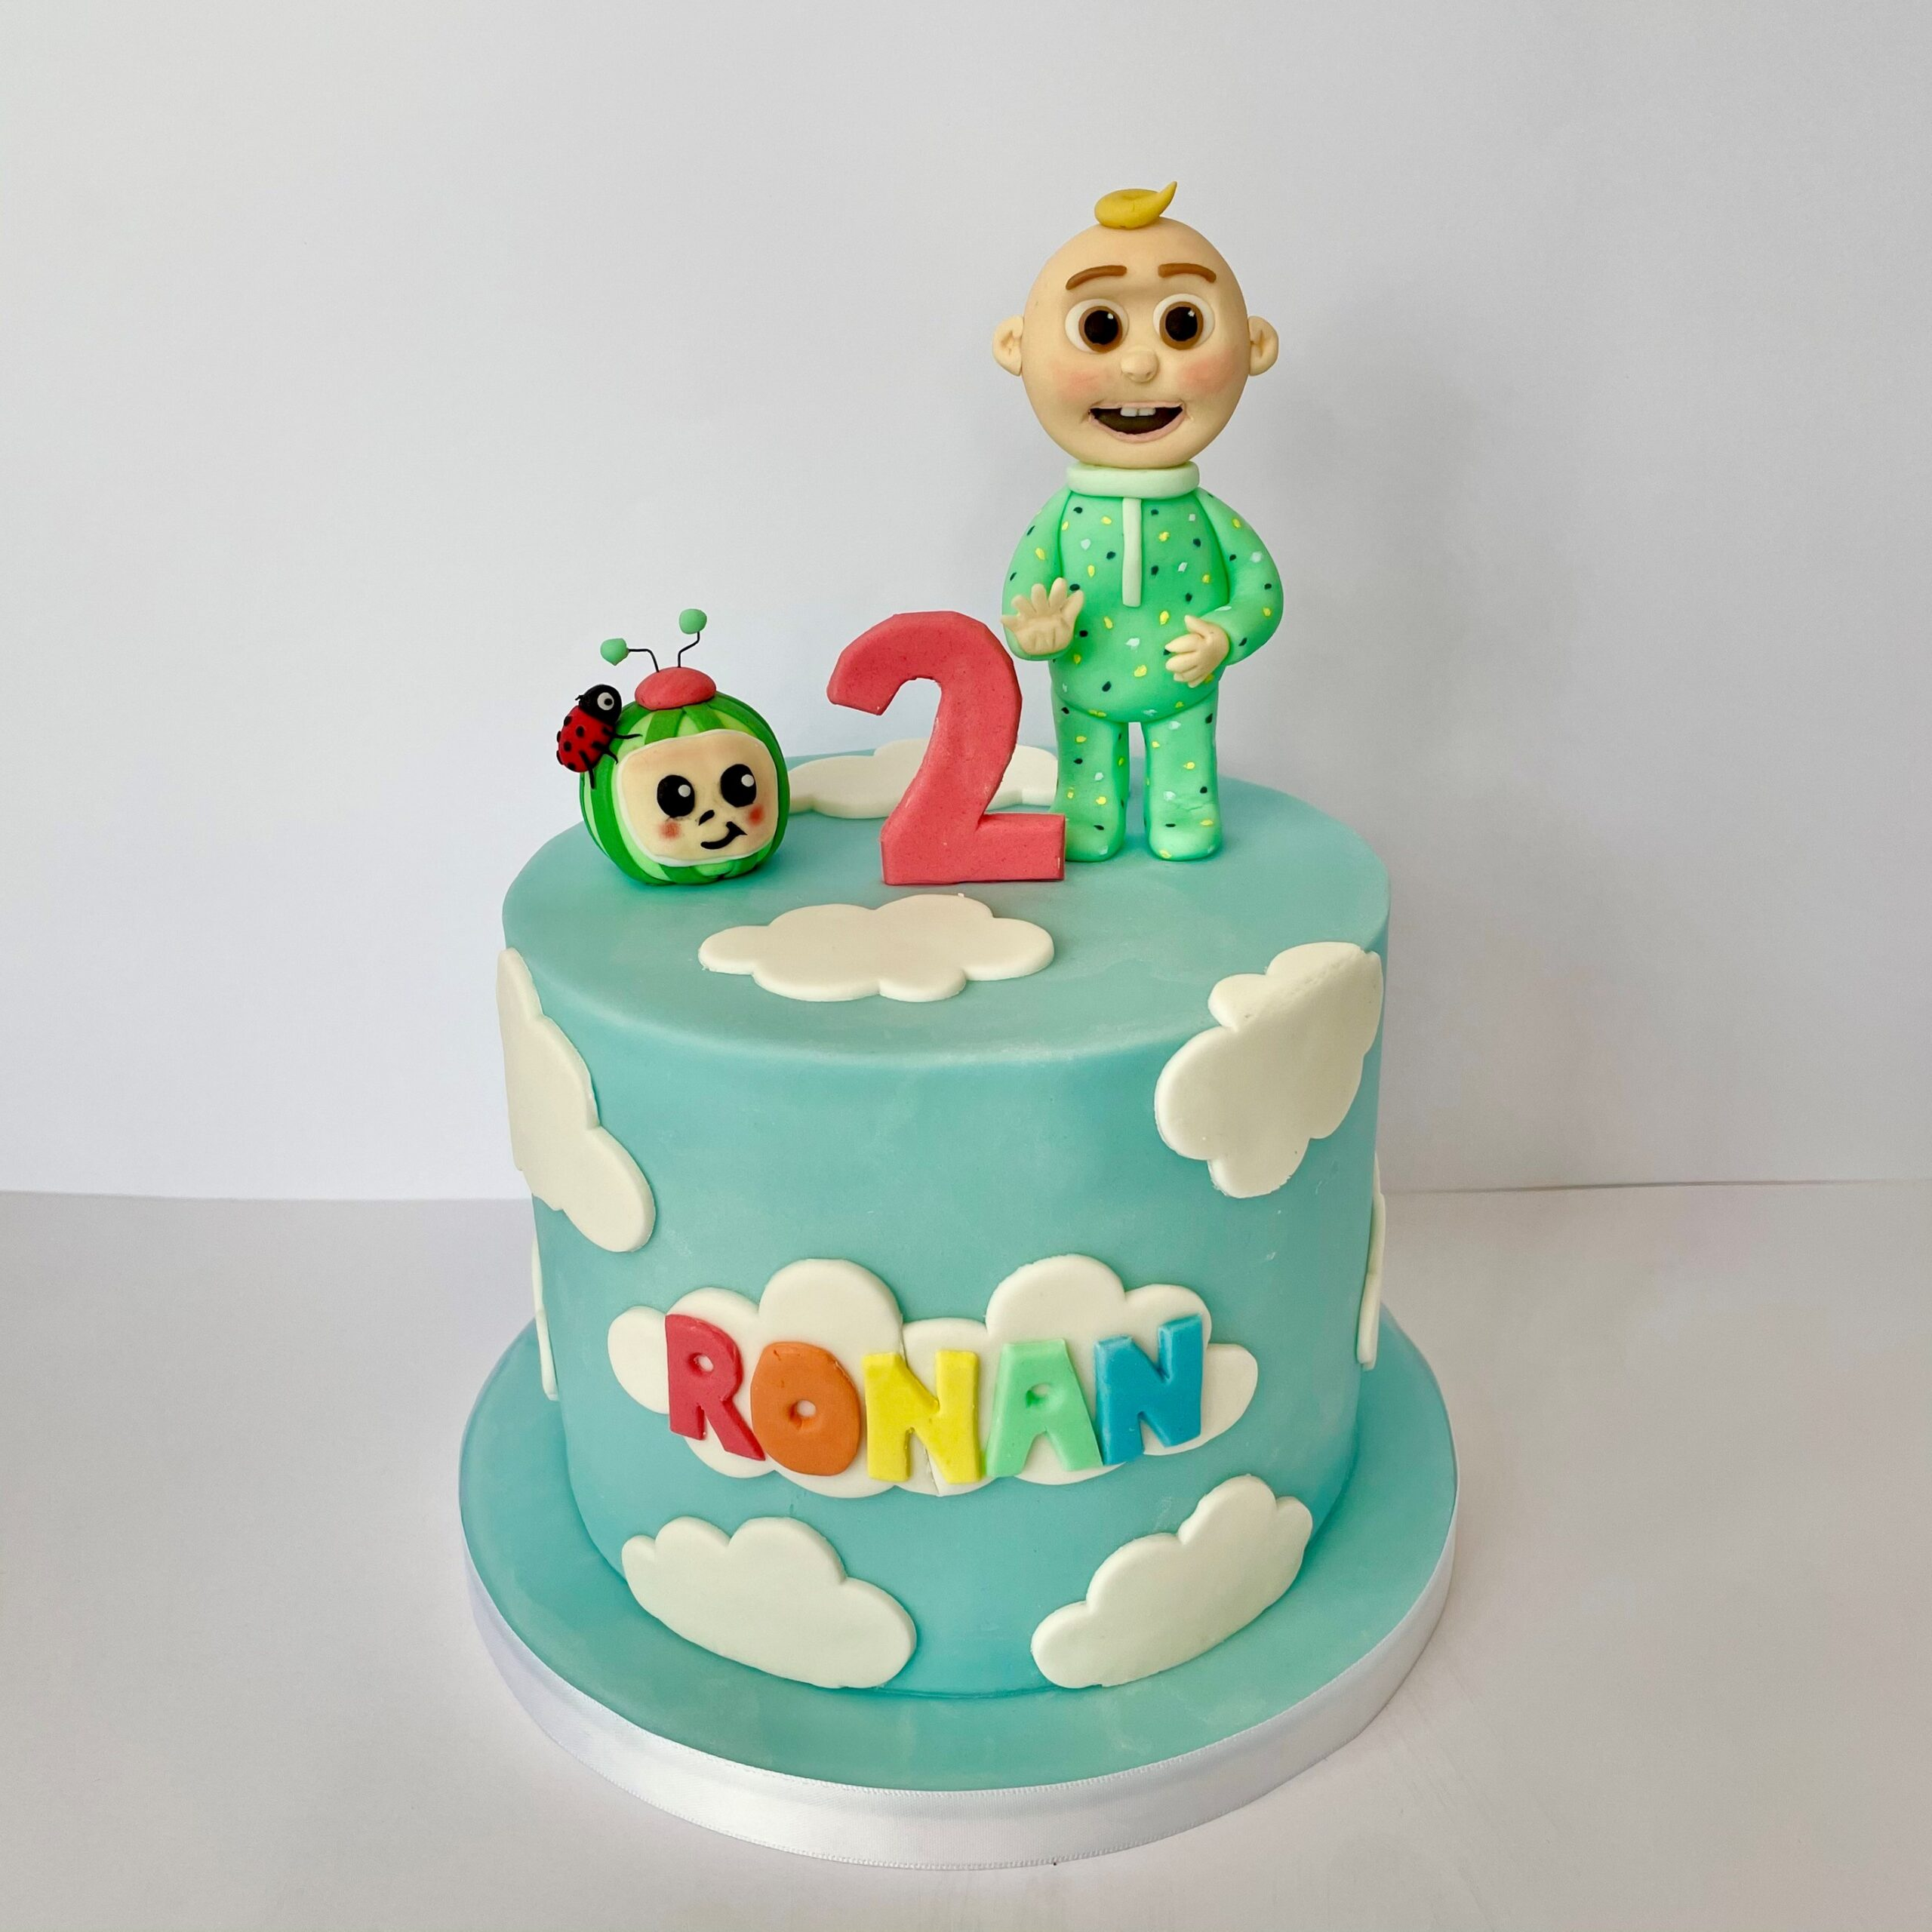 Cocomelon figure with ladybird, JJ standing up next to a red number two. On top of a blue cake with clouds and the name Ronan on the front side of the cake